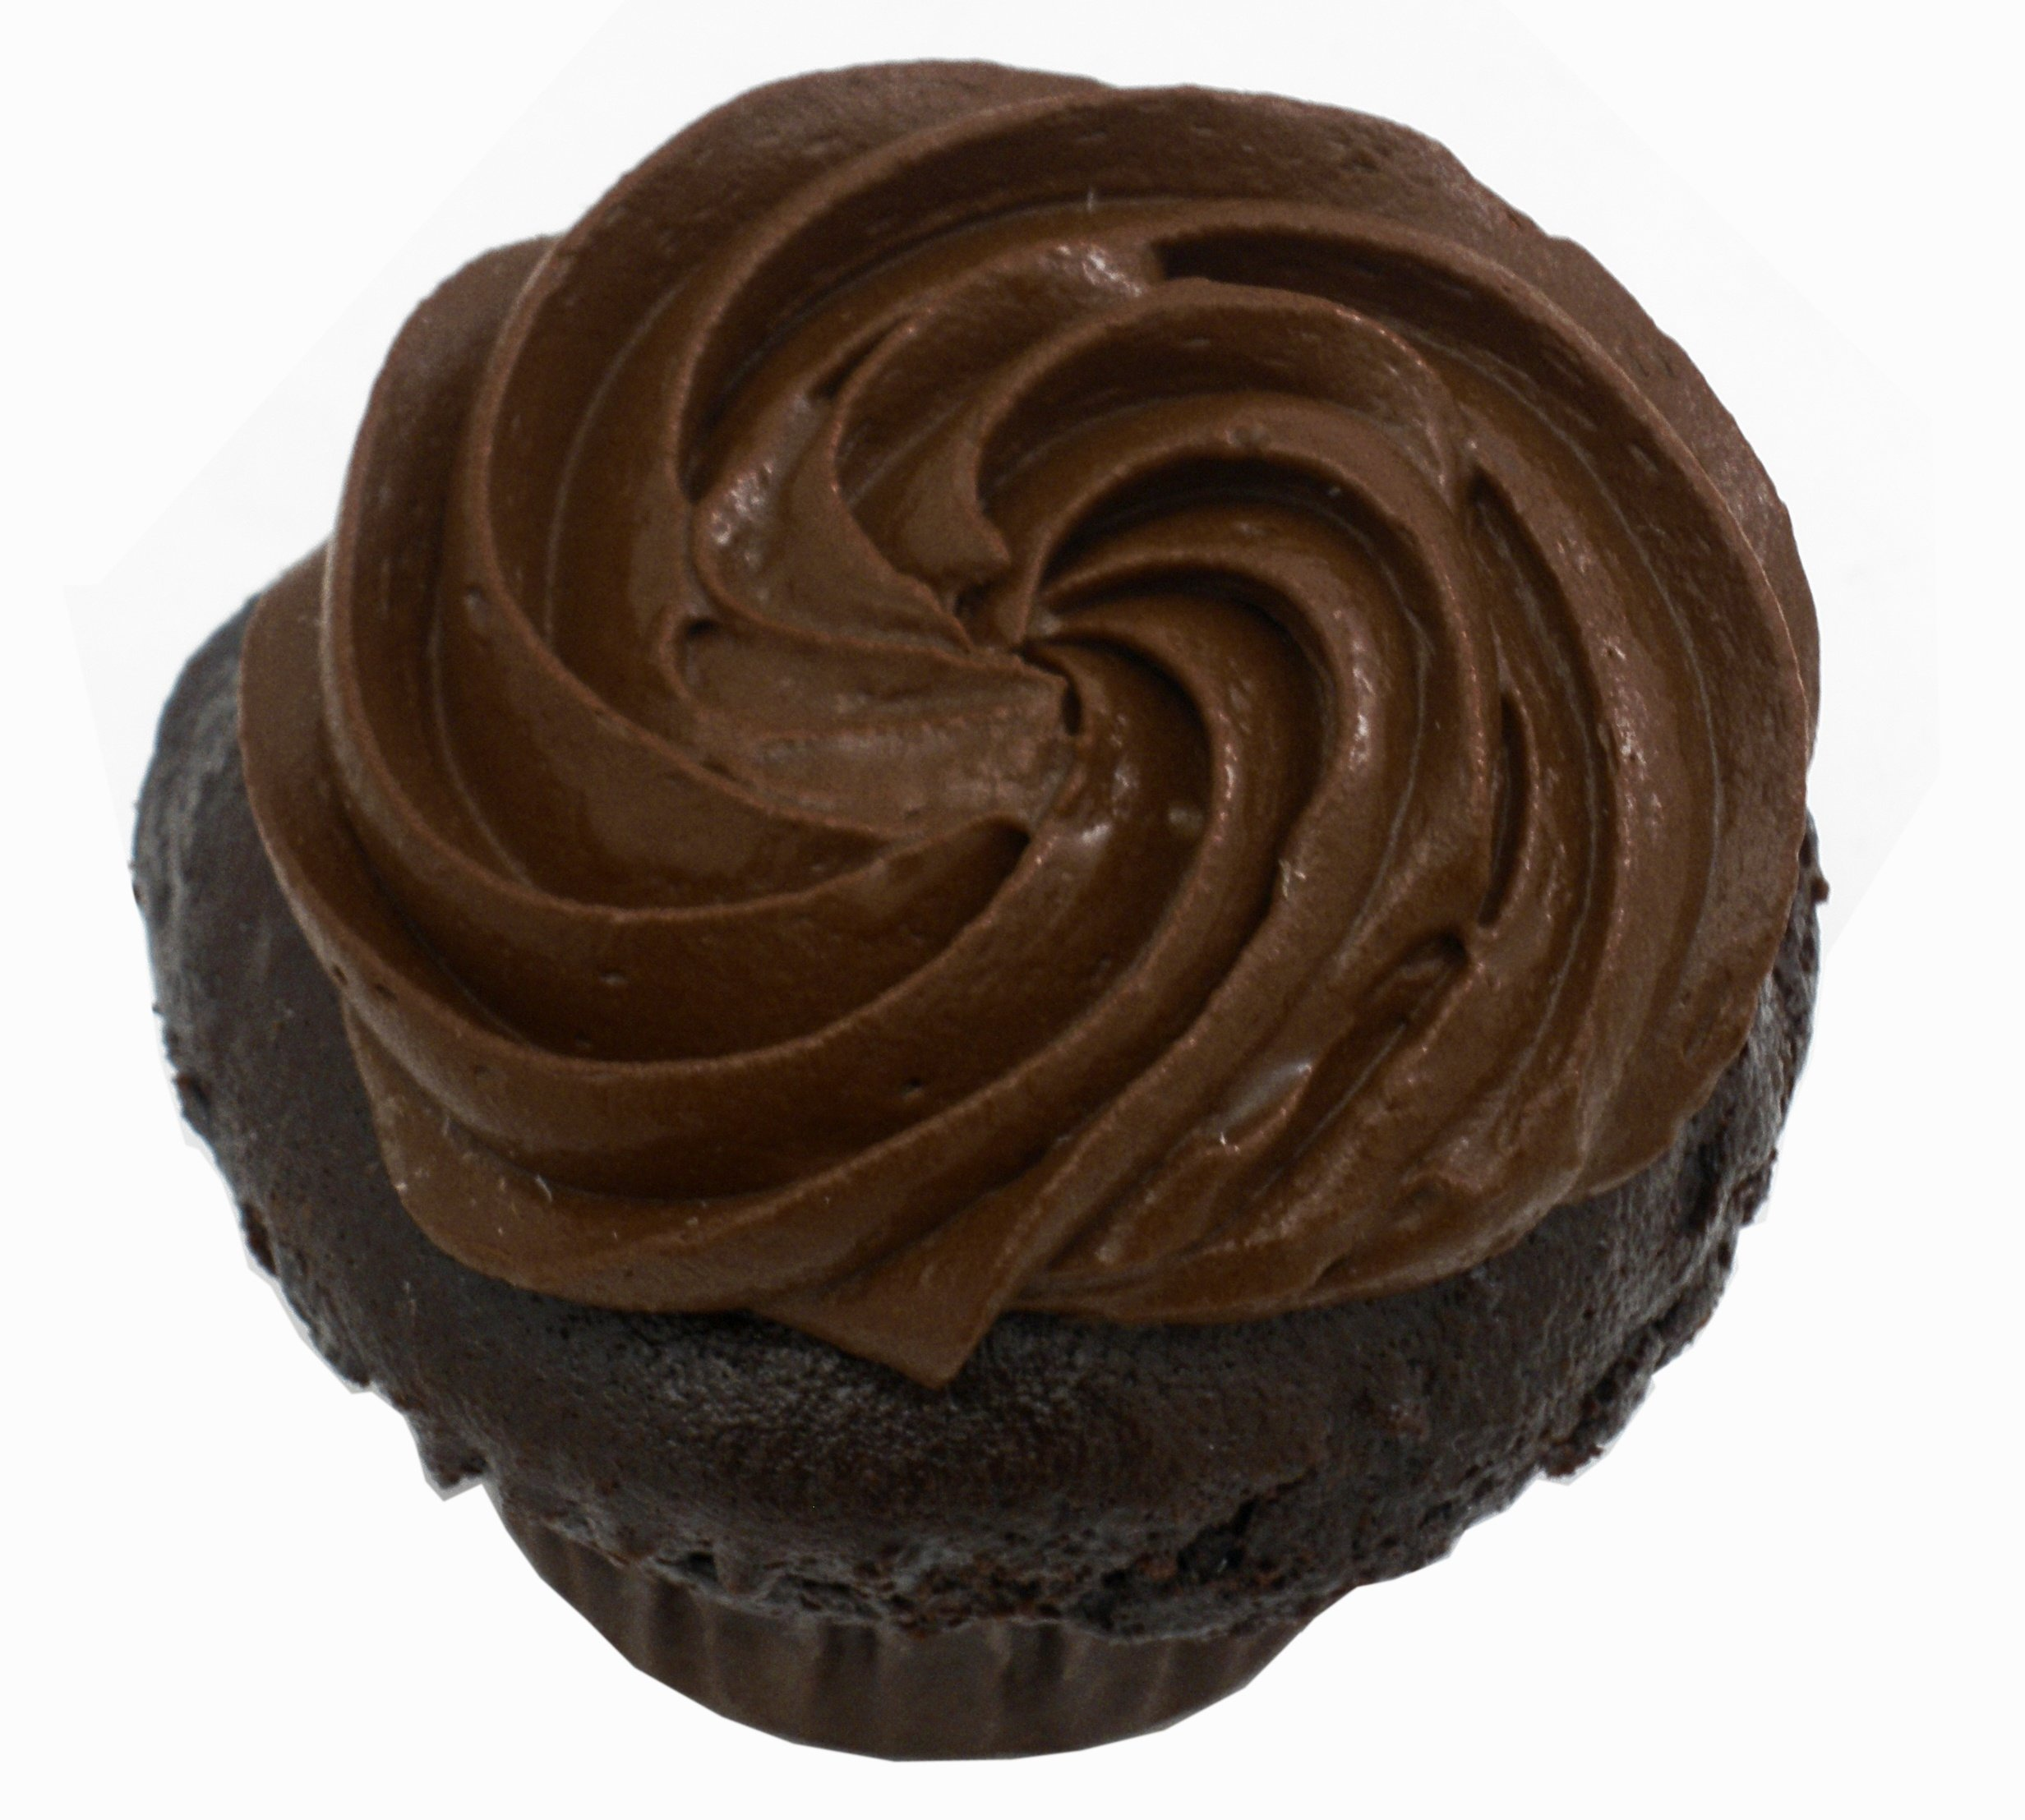 https://0901.nccdn.net/4_2/000/000/050/773/GF-Vegan-Choco-Cupcake-Cut-Darker-2464x2215.jpg